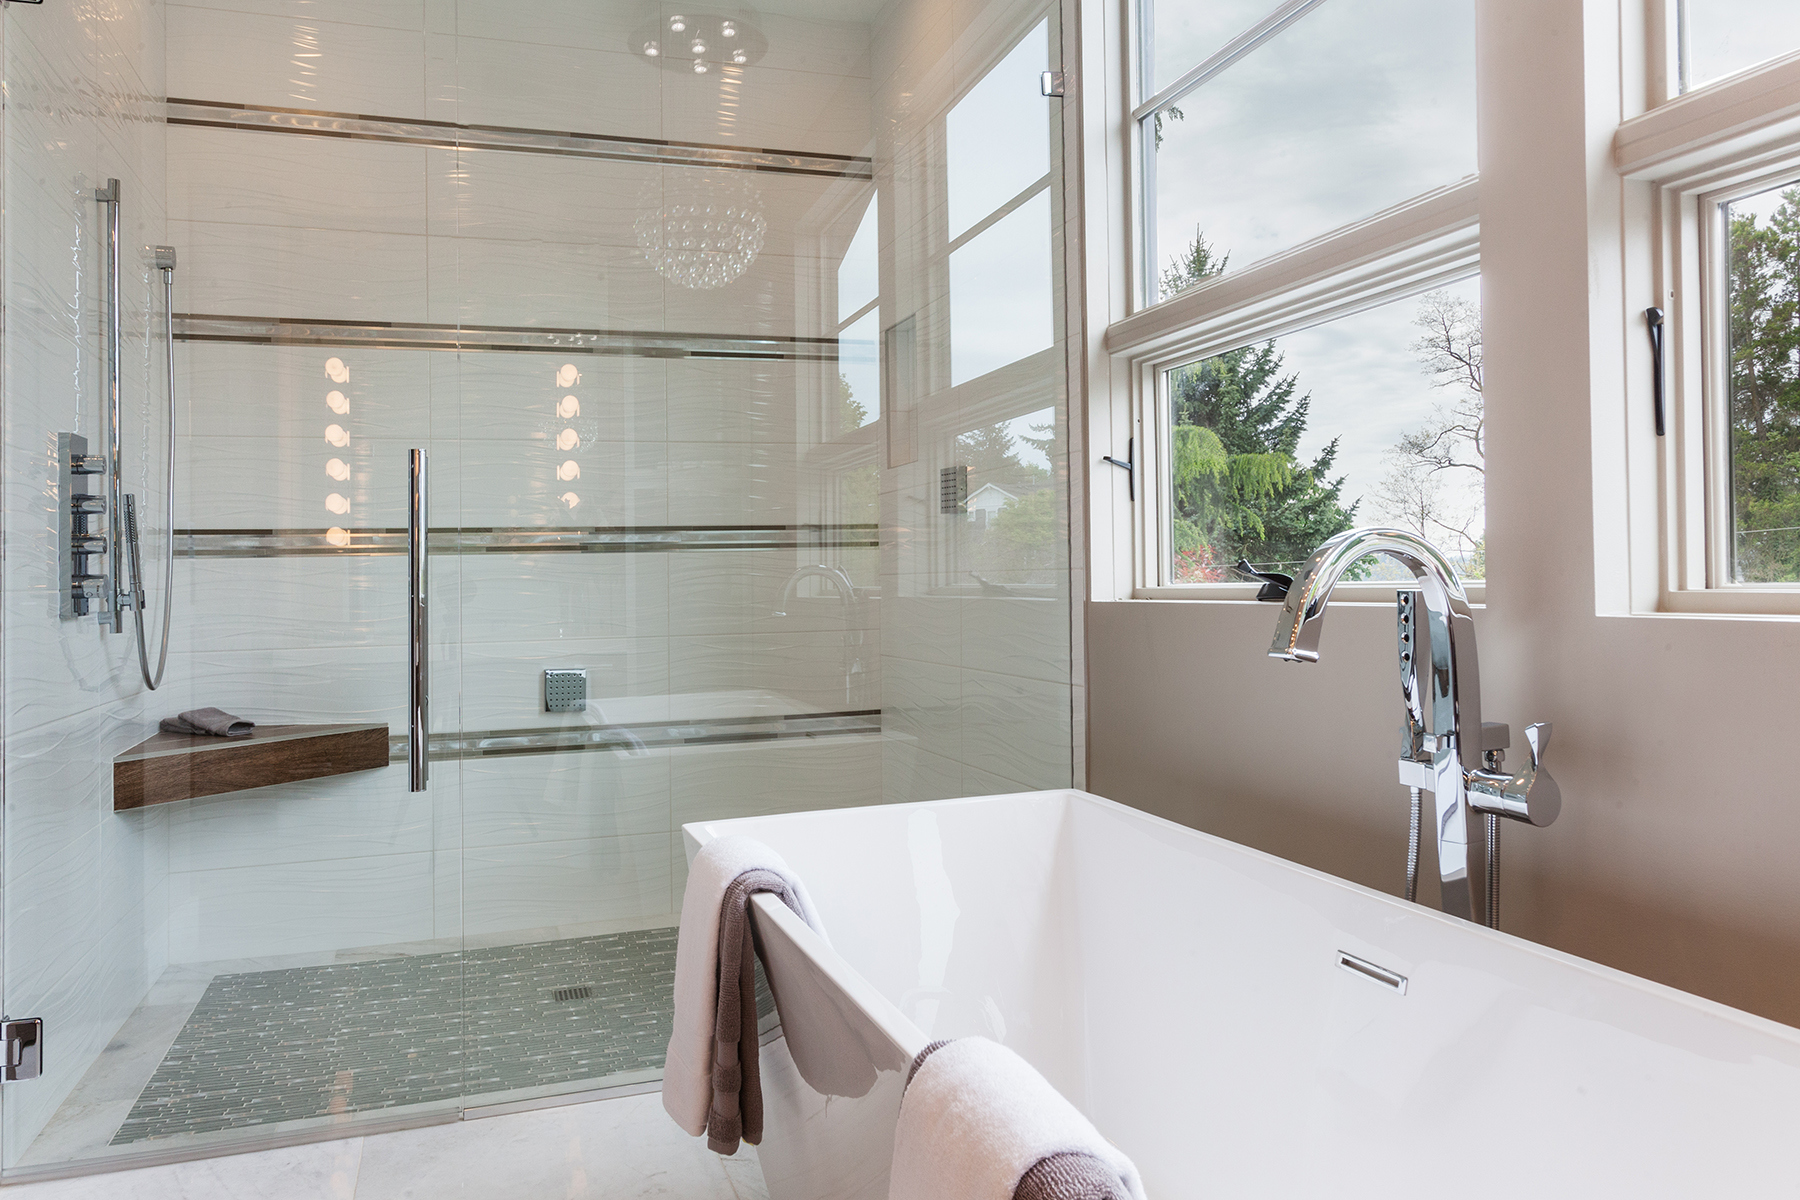 Additional photo for property listing at West Bellevue Masterpiece 102 96th Ave NE Bellevue, Washington 98004 United States